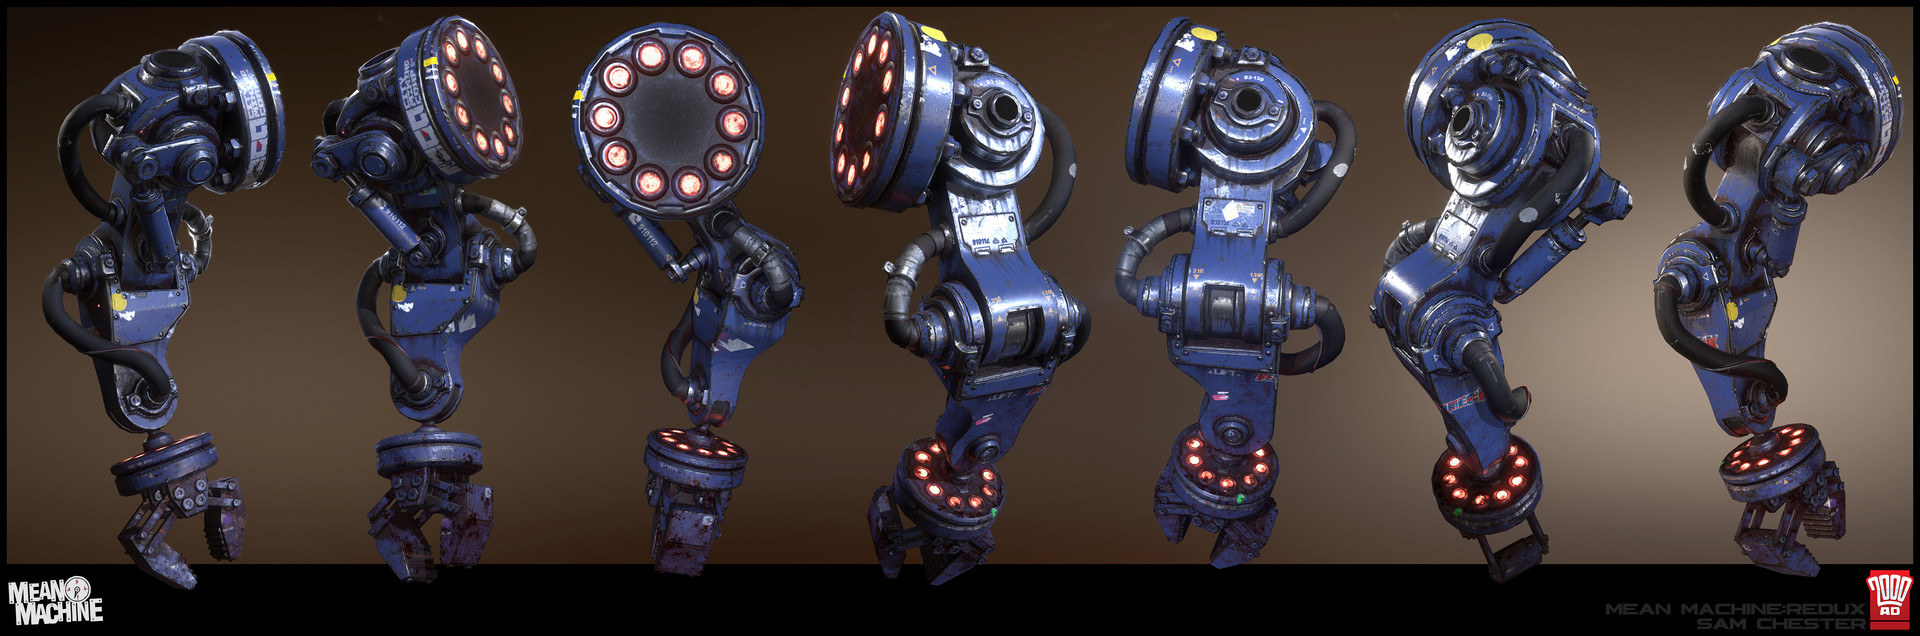 Mech-arm turnarounds